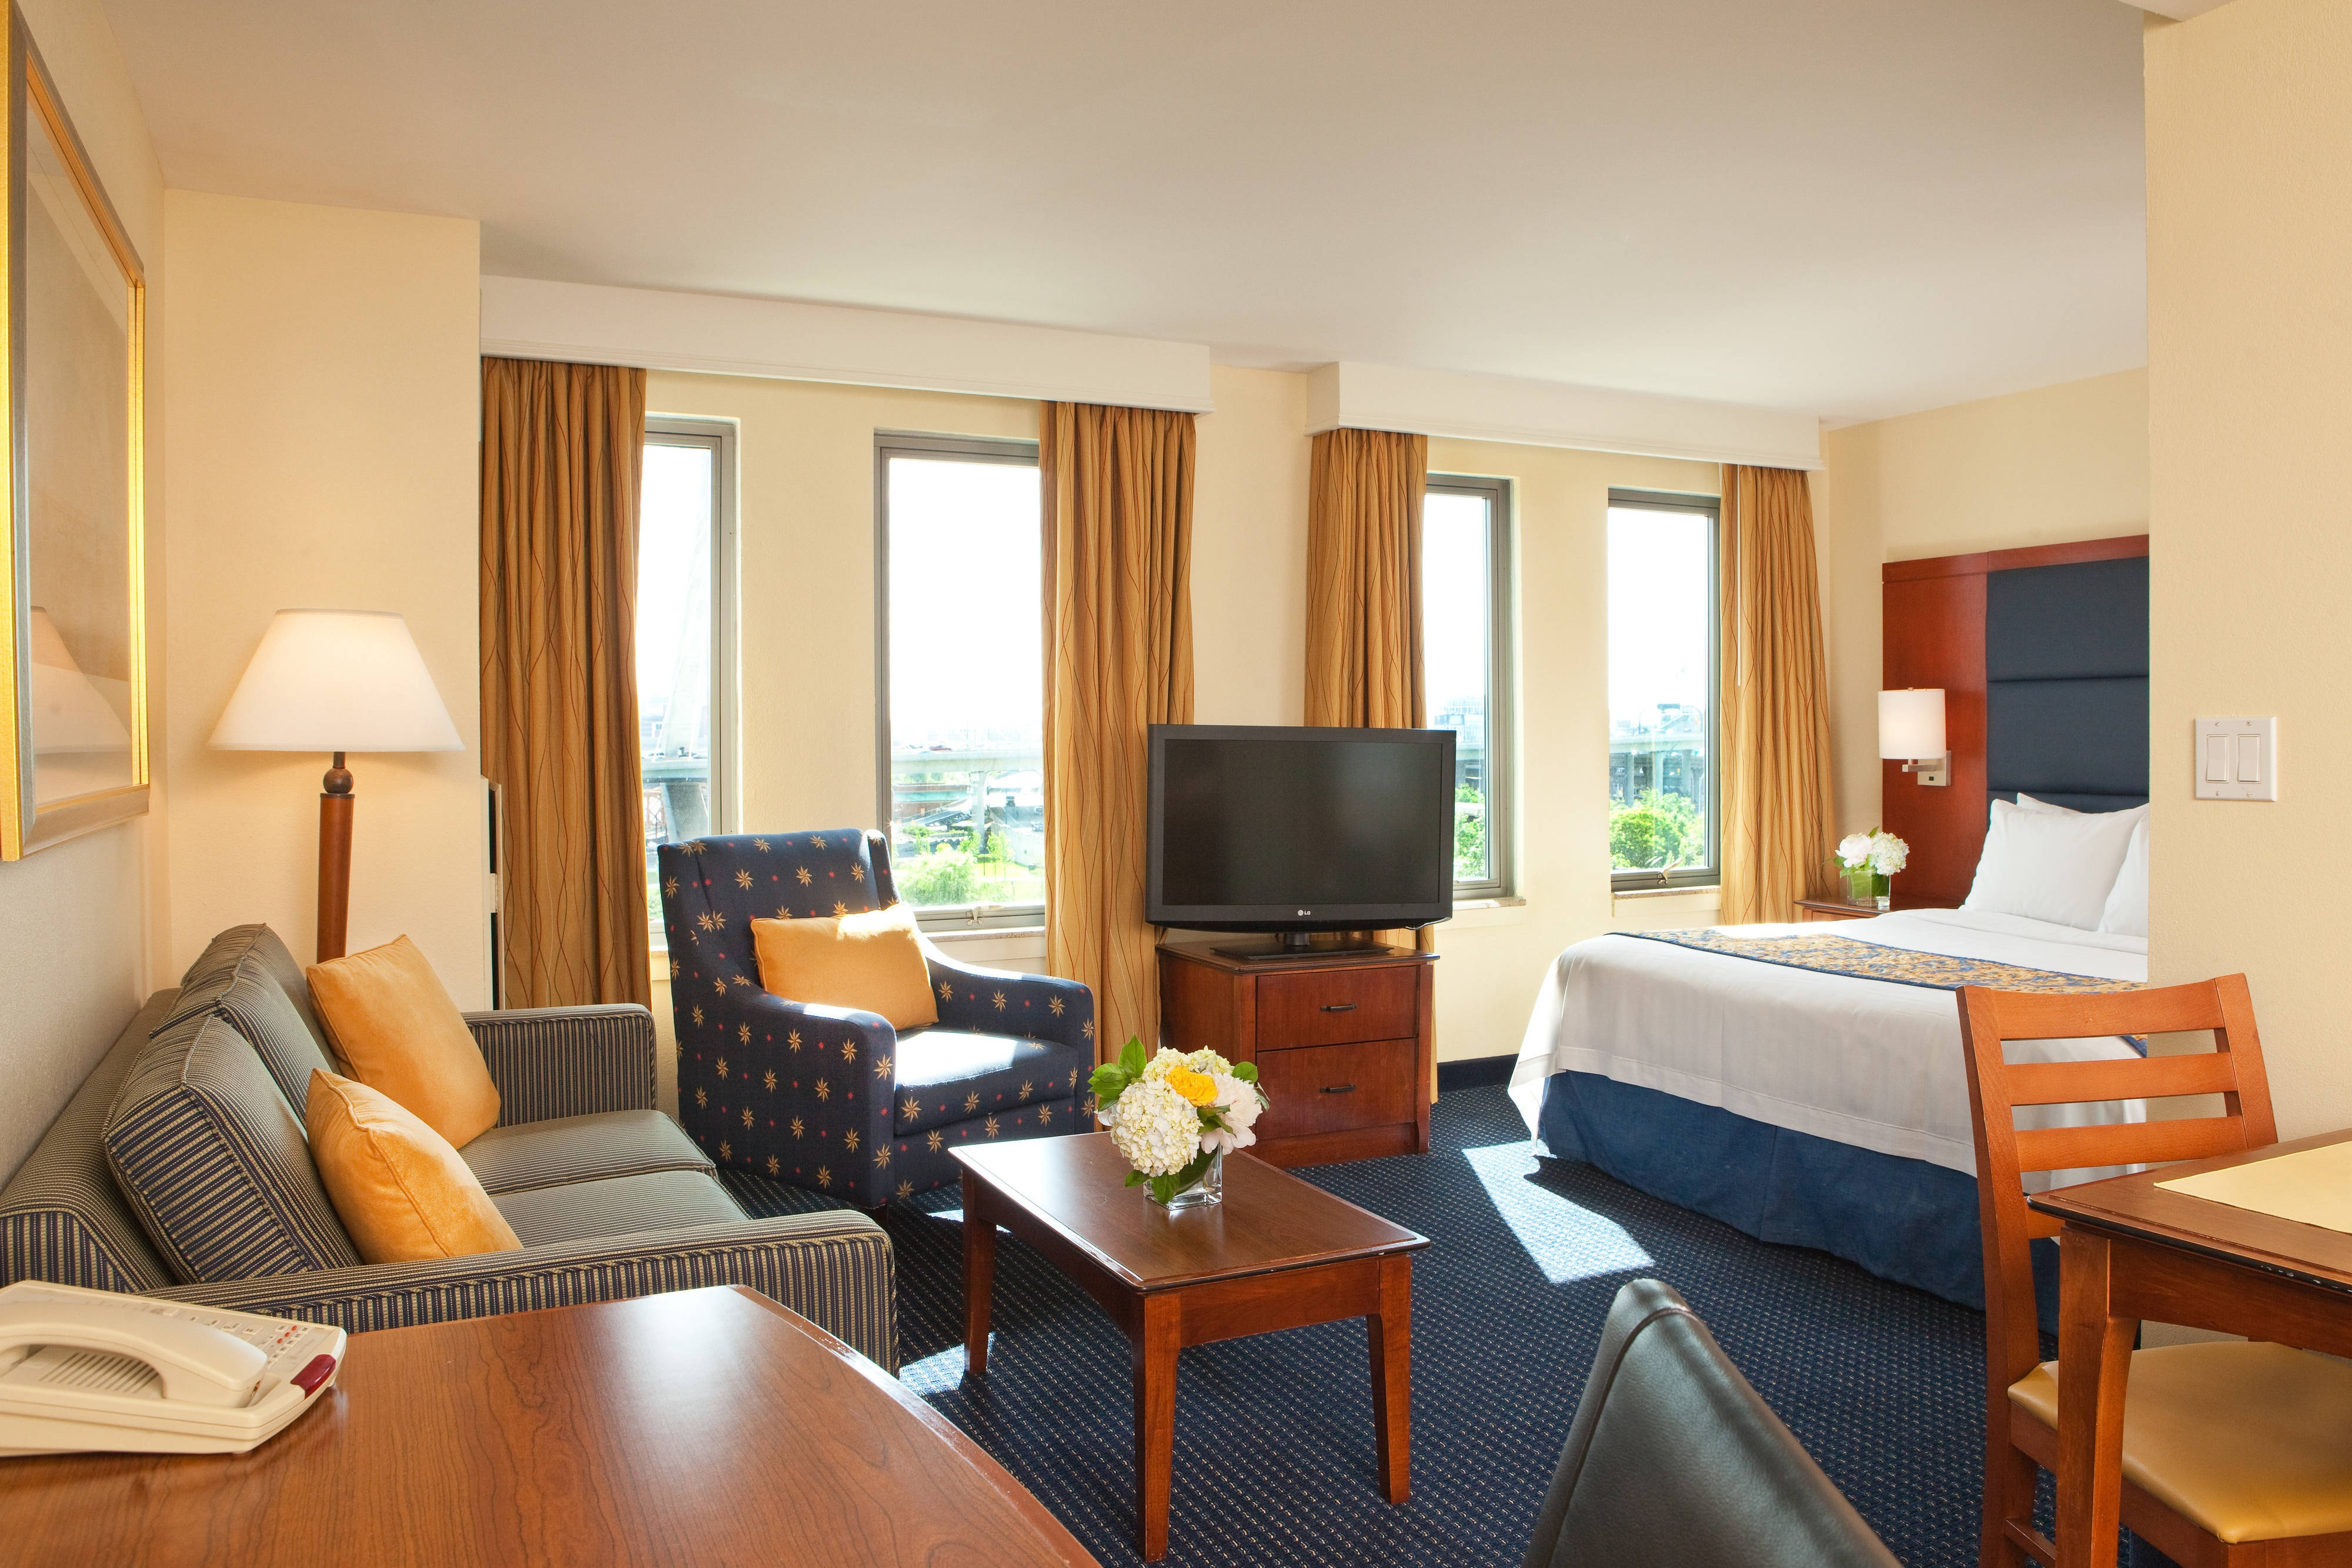 extended stay boston harbor downtown boston suite hotel 2 rh marriott com Elara 2 Bedroom Suite 3- Bedroom Hotel with Suites